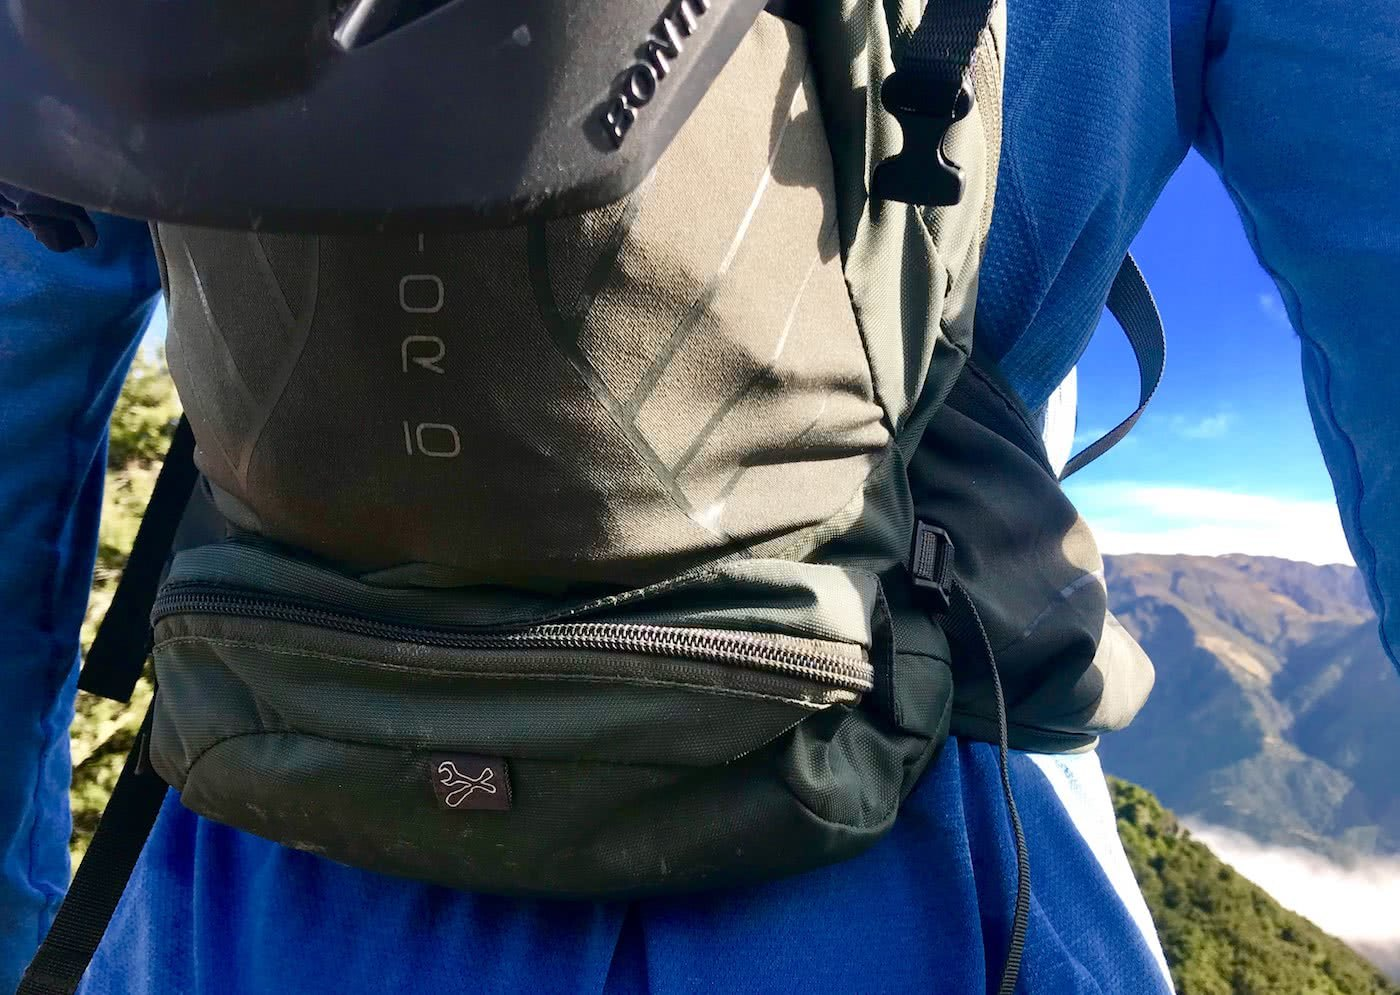 Osprey Raptor 10 Riding Pack // Gear Review by Rowan Beggs-French cycling backpack, rock garden, mountain biking, backpack detail